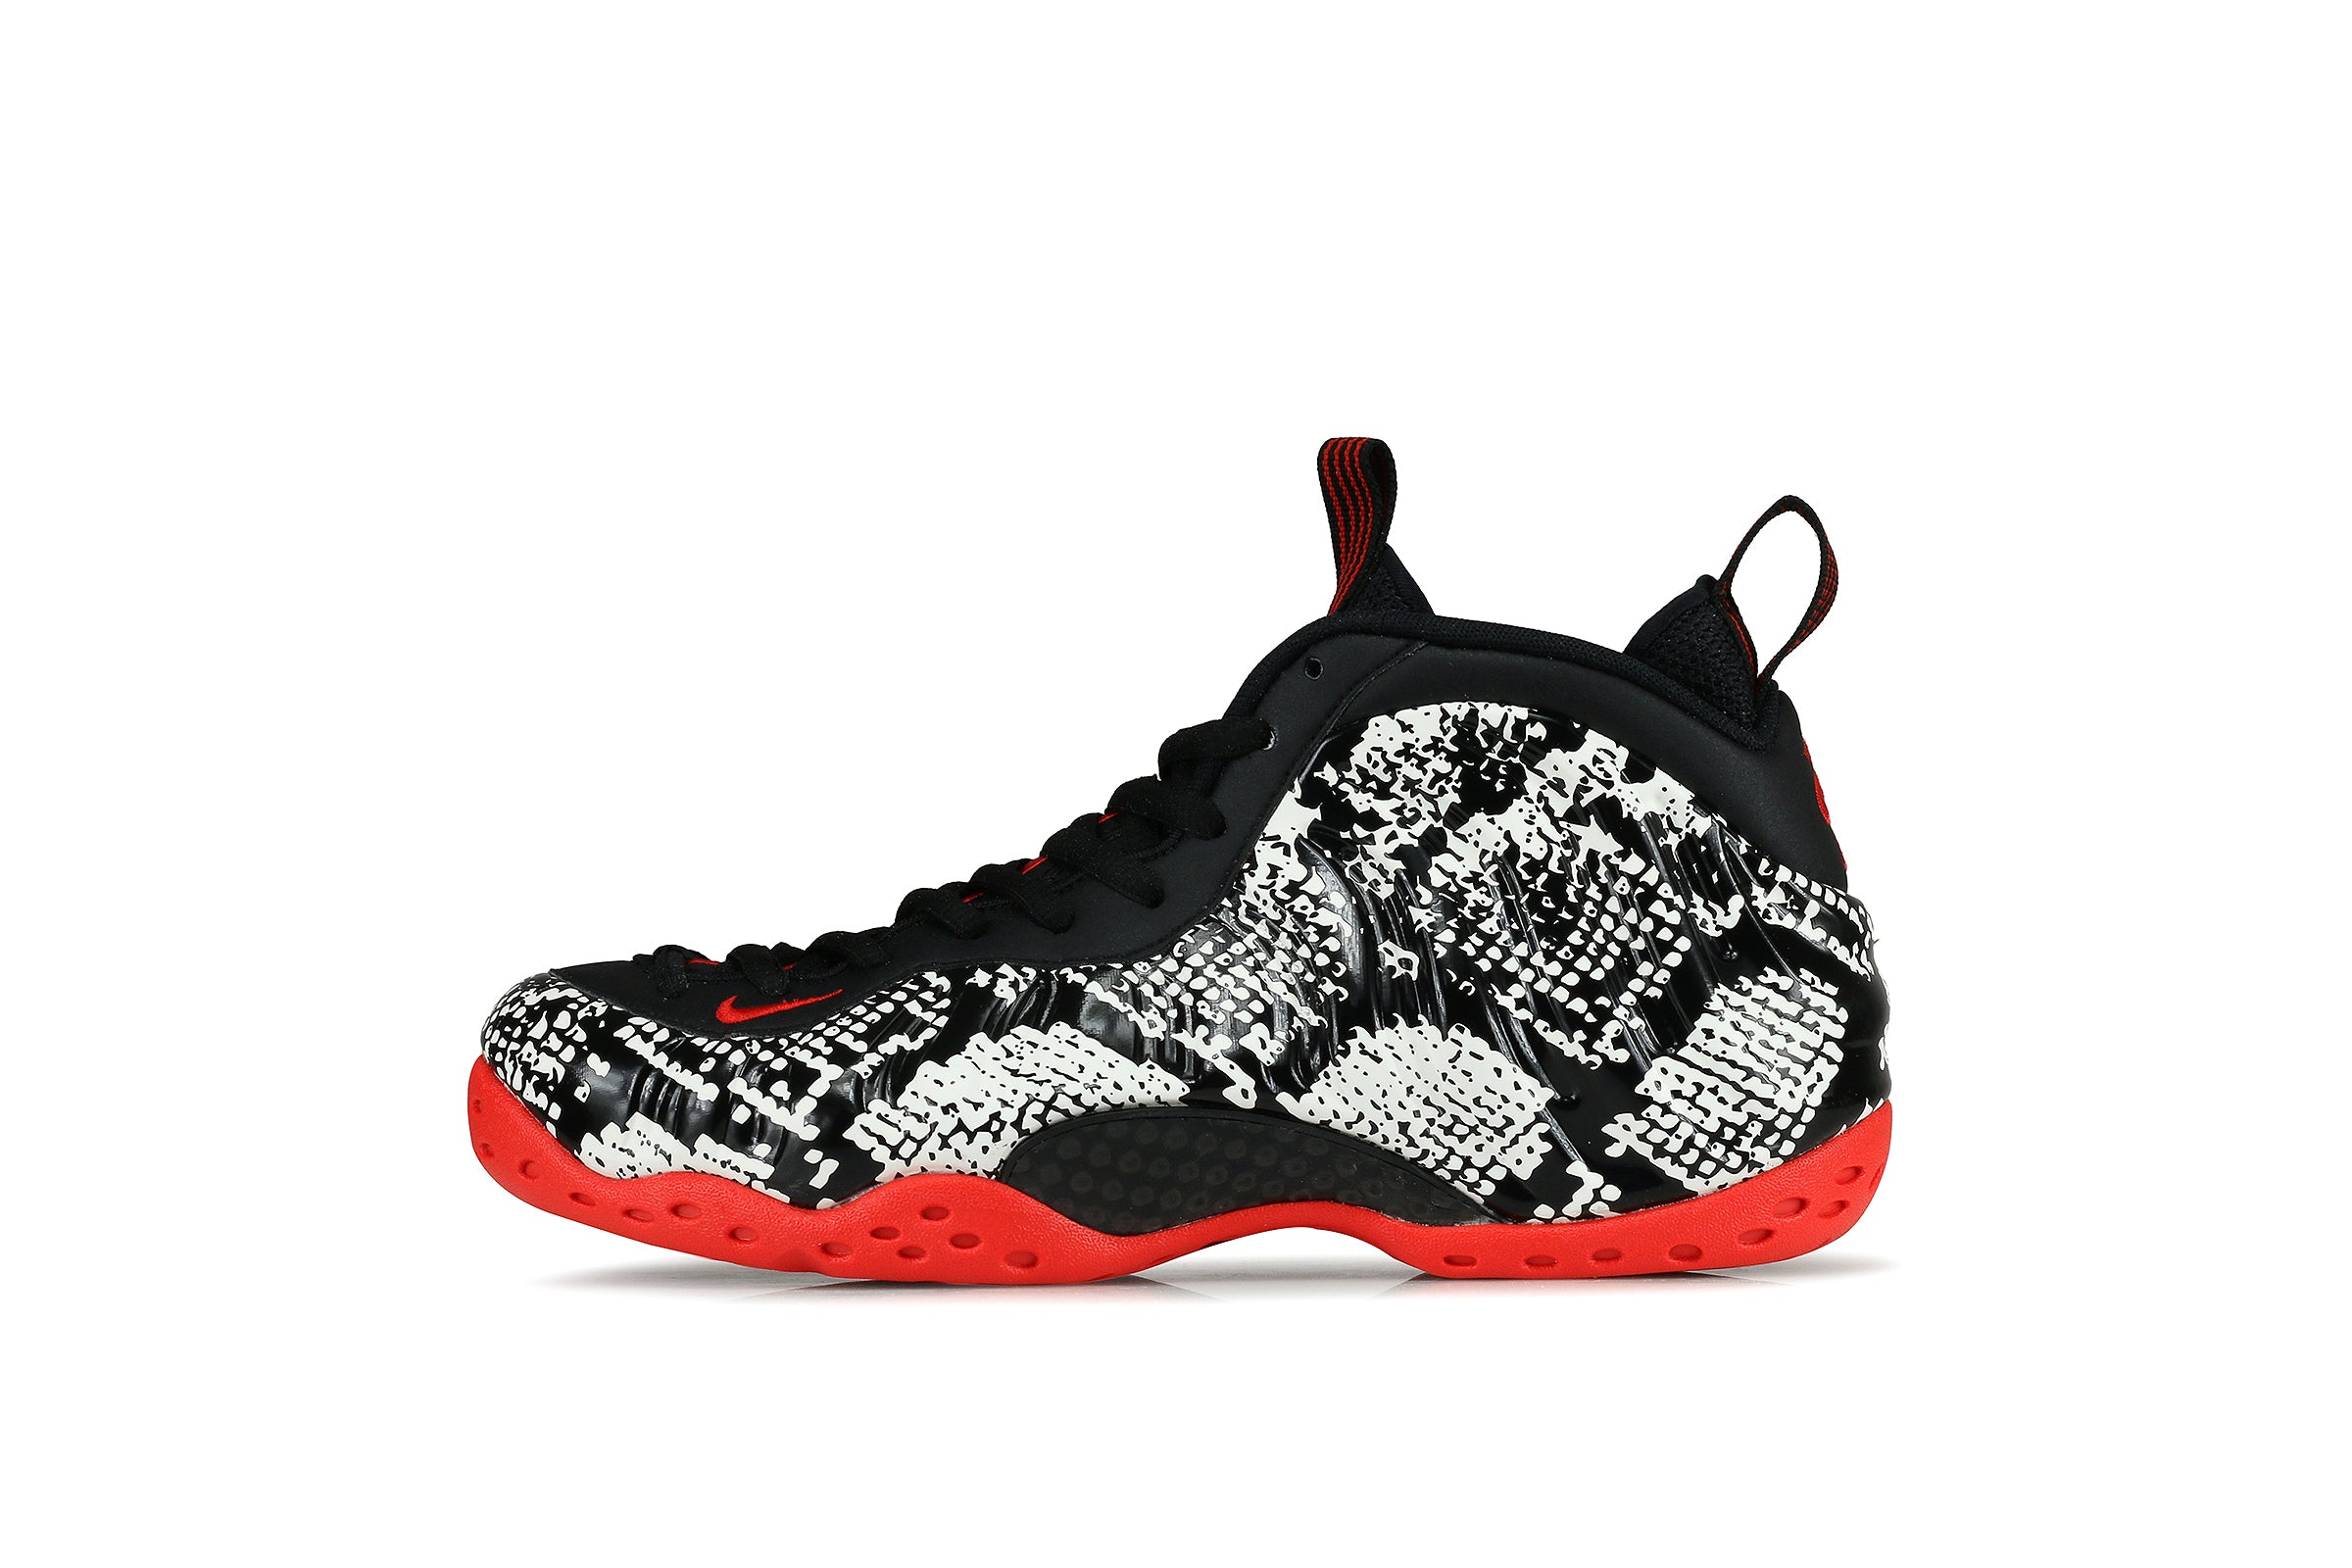 online store fcf16 dc7d4 Nike Air Foamposite One